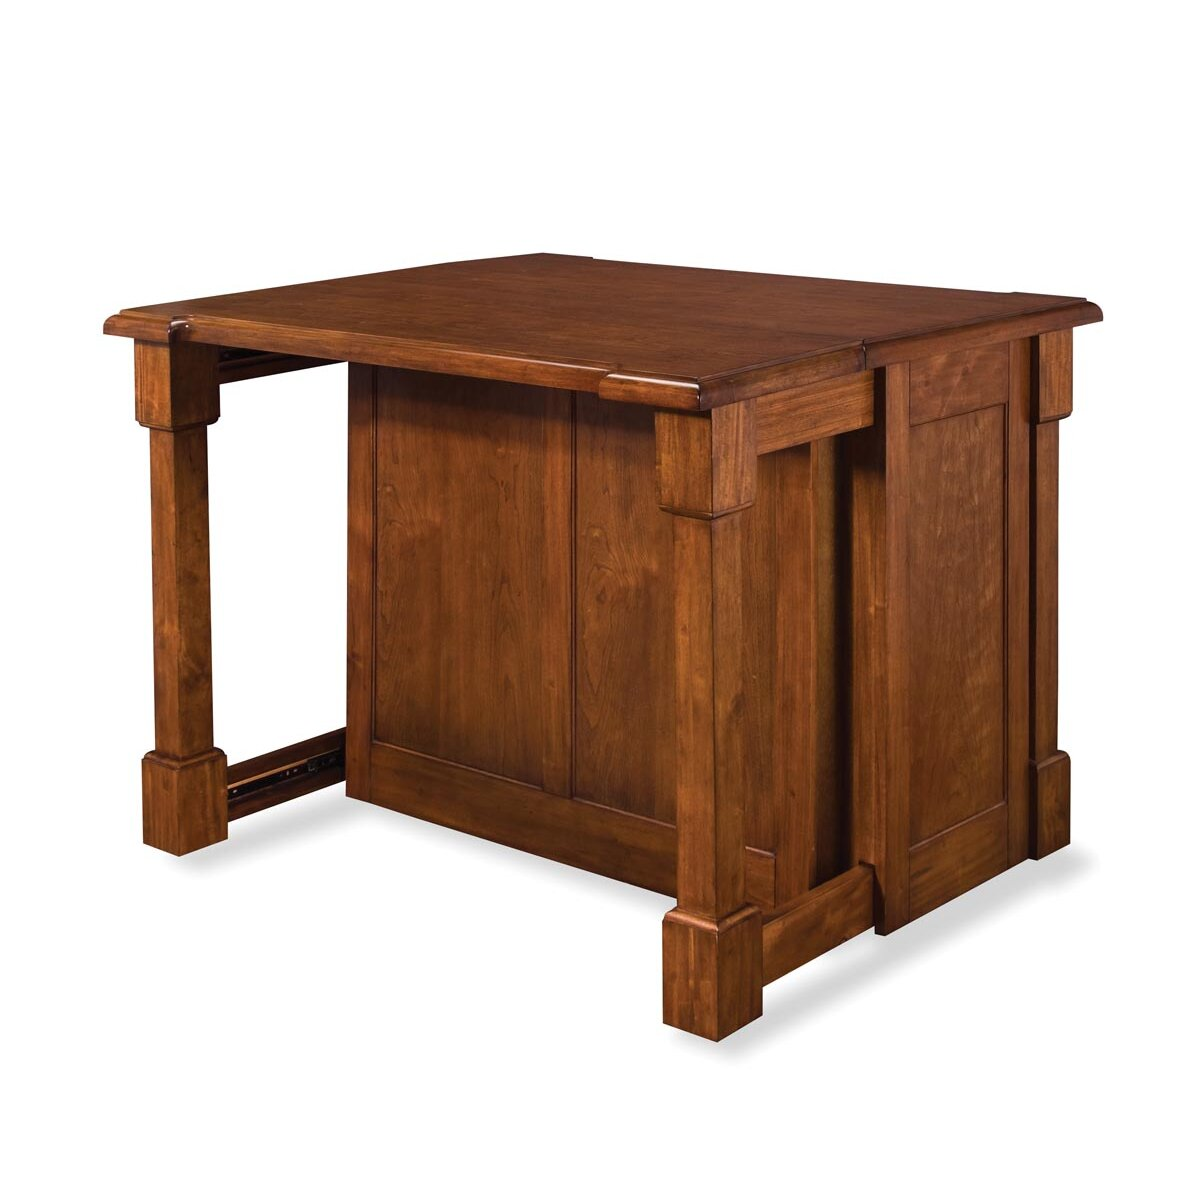 home styles aspen kitchen island amp reviews wayfair home styles 5520 9459 aspen kitchen island and two bar